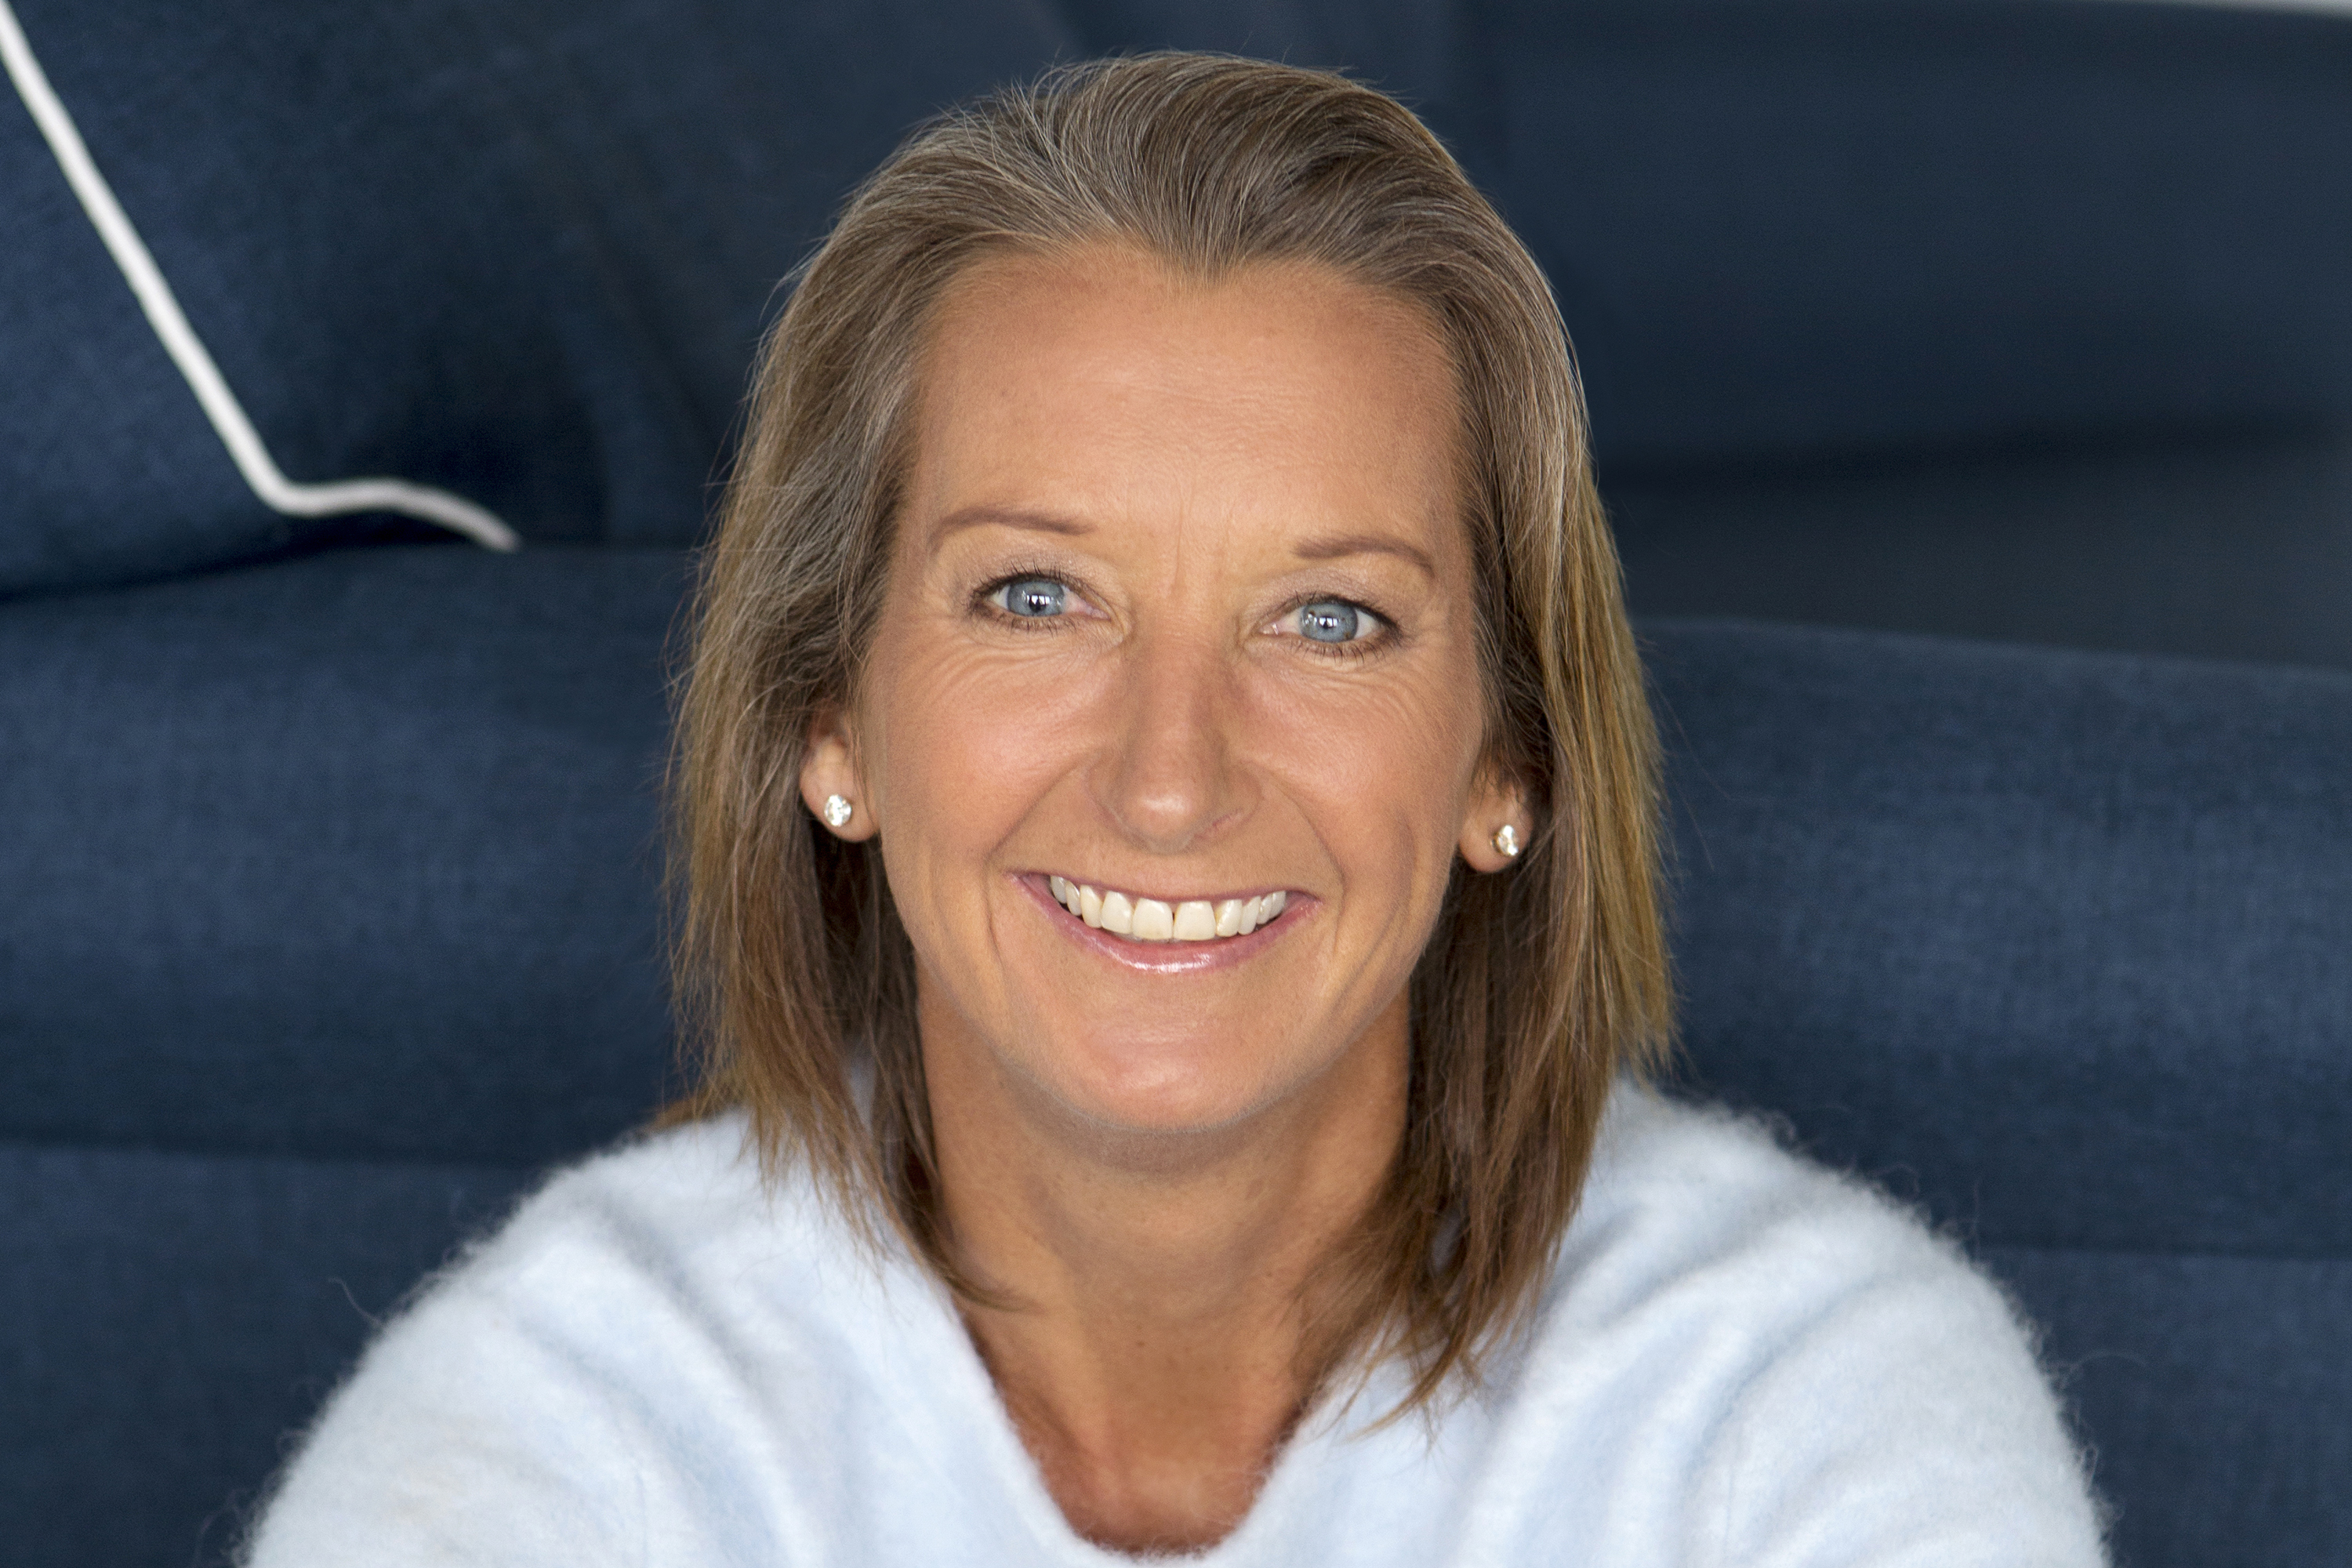 Speakers related to Andrew Slack: Layne Beachley